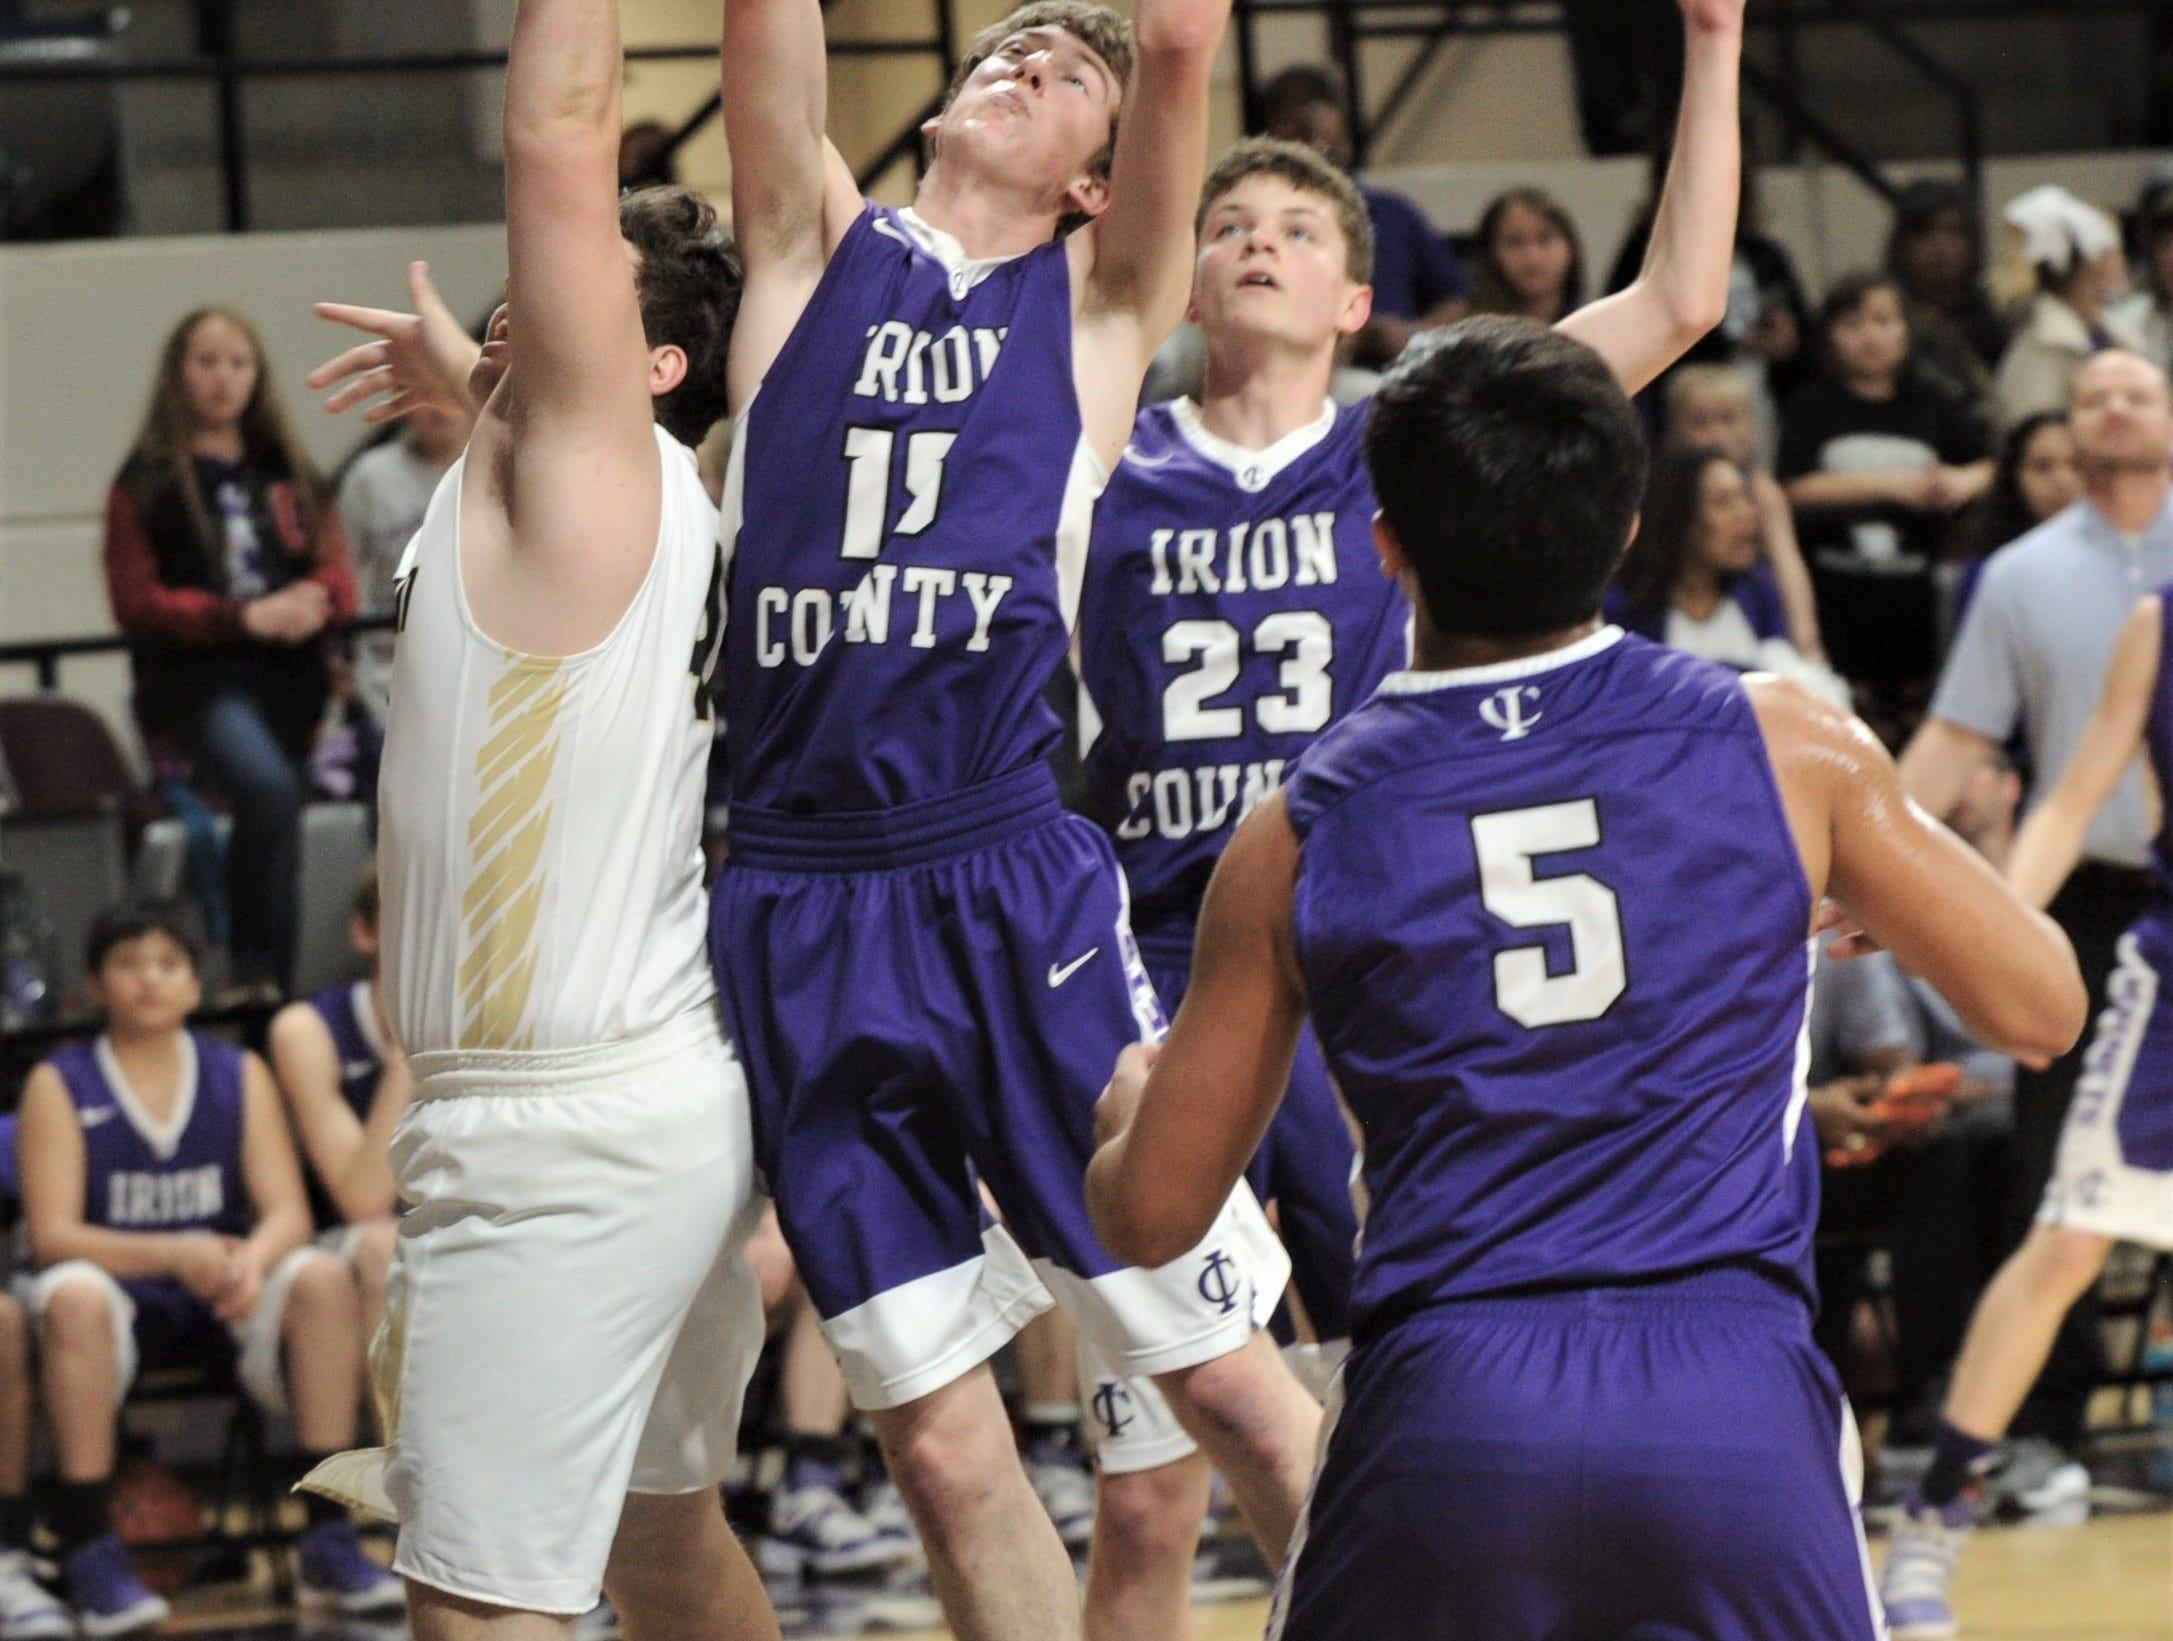 Irion County's Avery Theeck, near left, battles a Jayton player for a rebound. The Jaybirds beat Irion County 47-32 in the Region II-1A championship game Saturday, March 2, 2019, at Abilene Christian's Moody Coliseum.